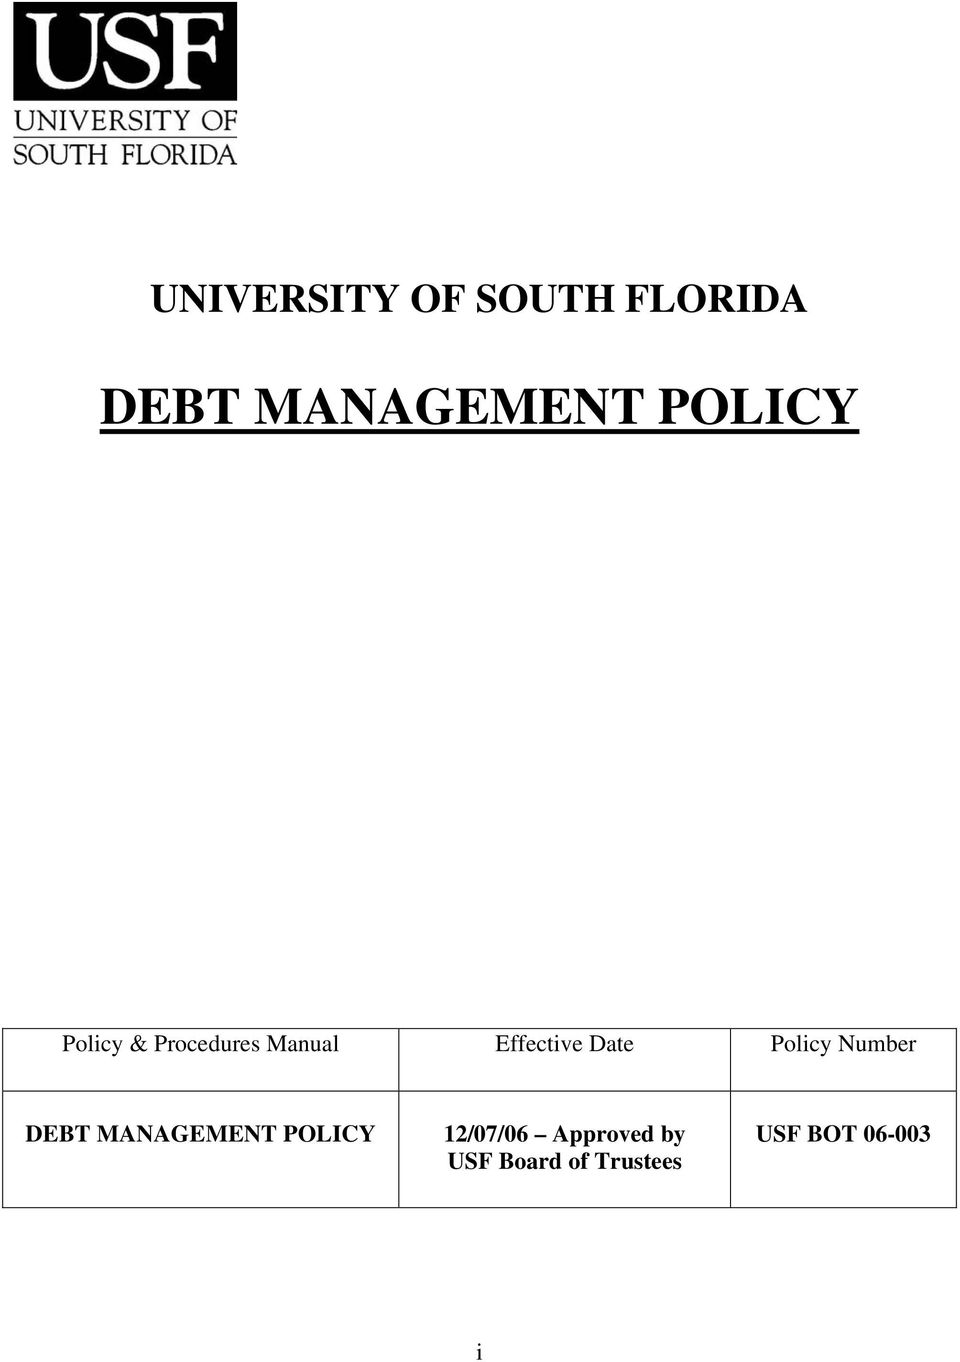 Date Policy Number DEBT MANAGEMENT POLICY